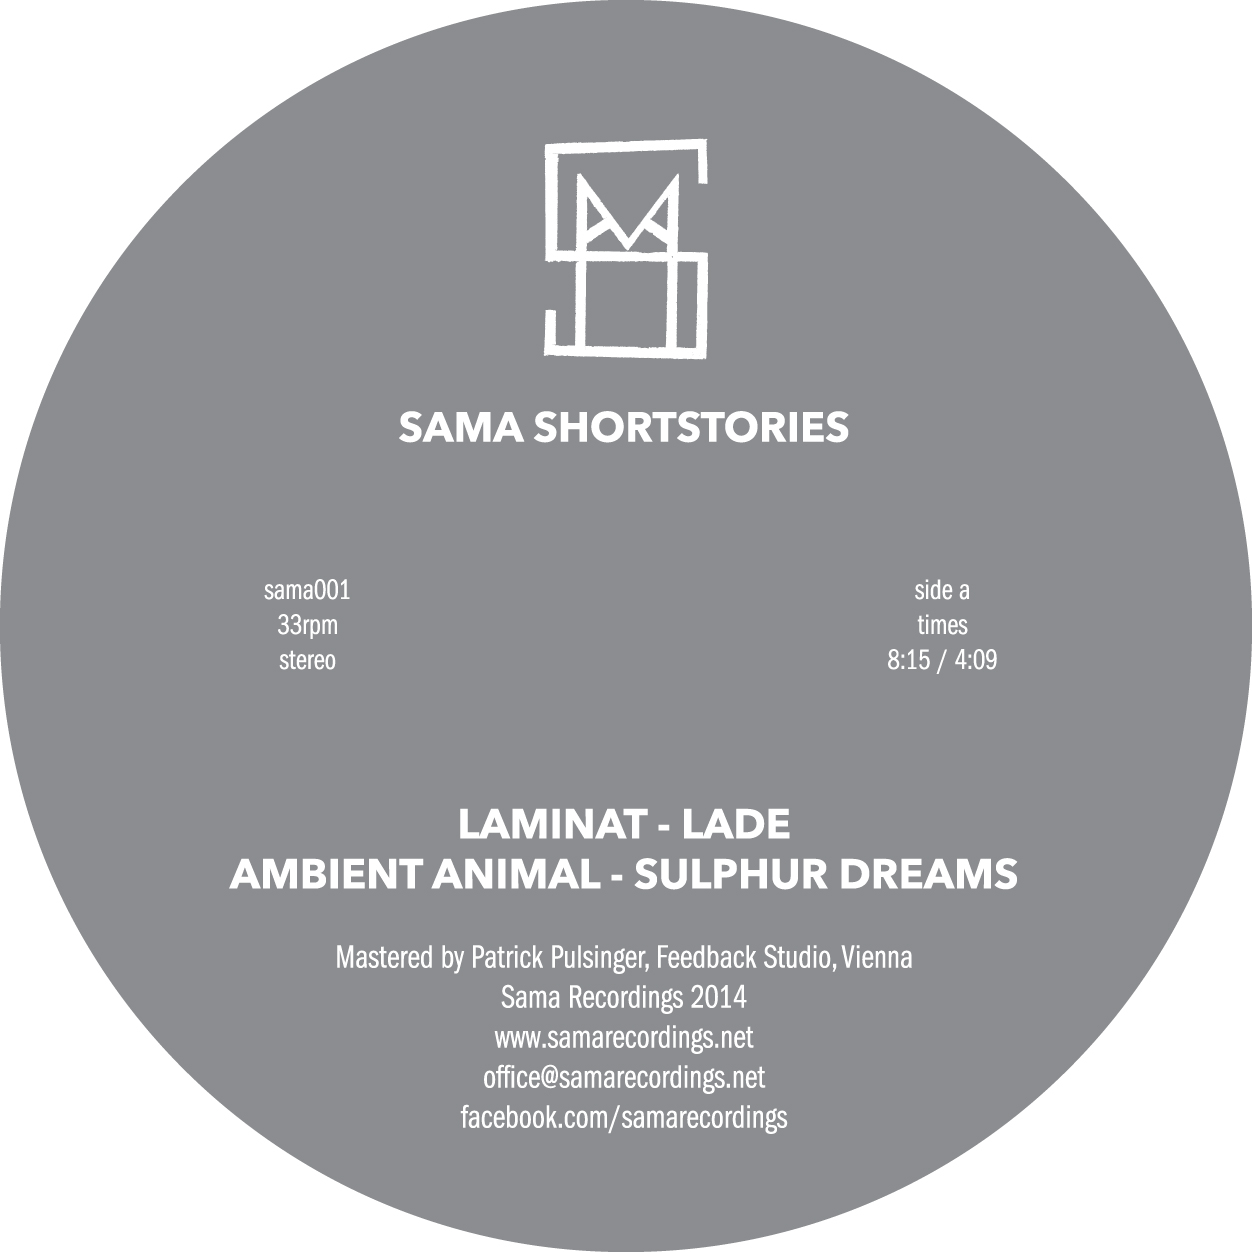 sama001_vinyl label_side a